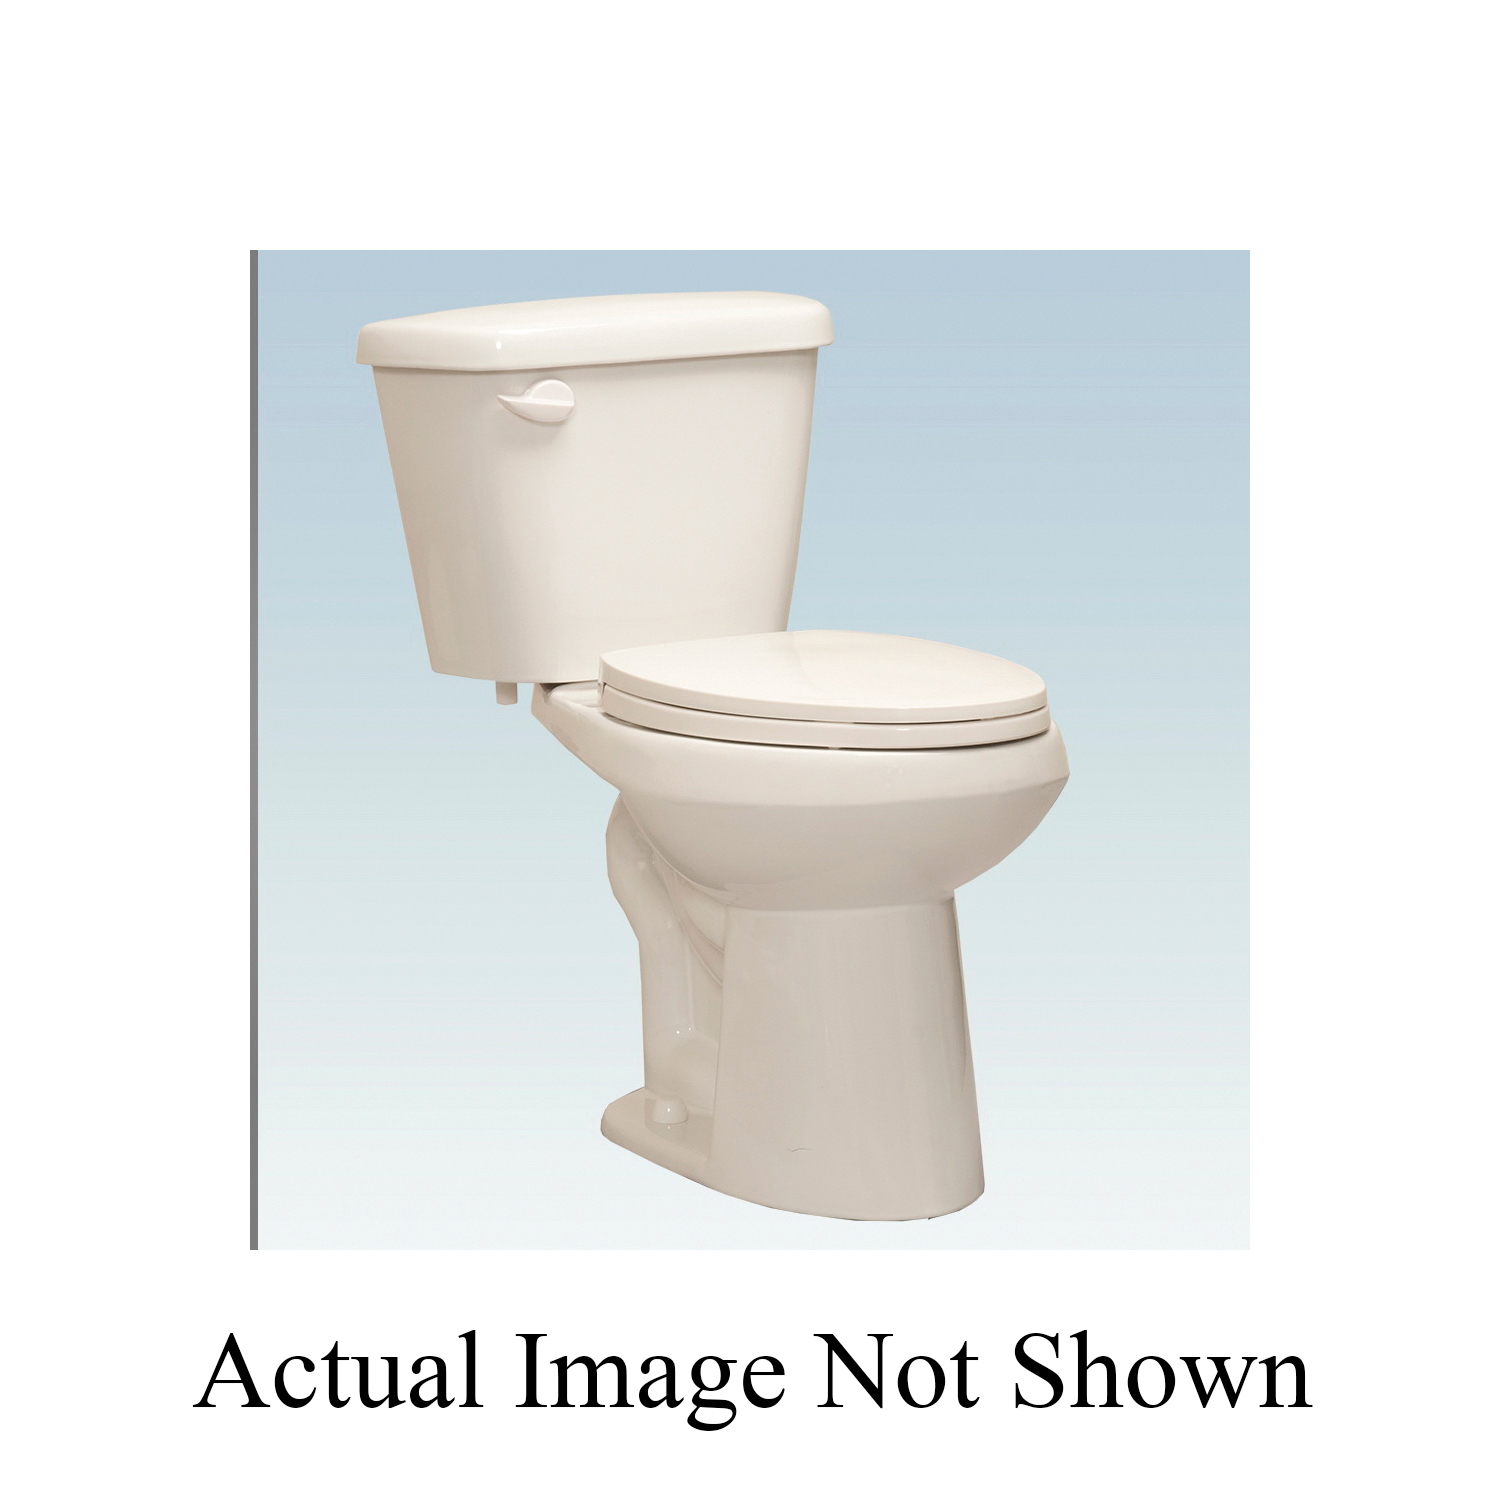 Western Pottery B872 Toilet Bowl, Elongated, 8.22 x 10.43 in, White